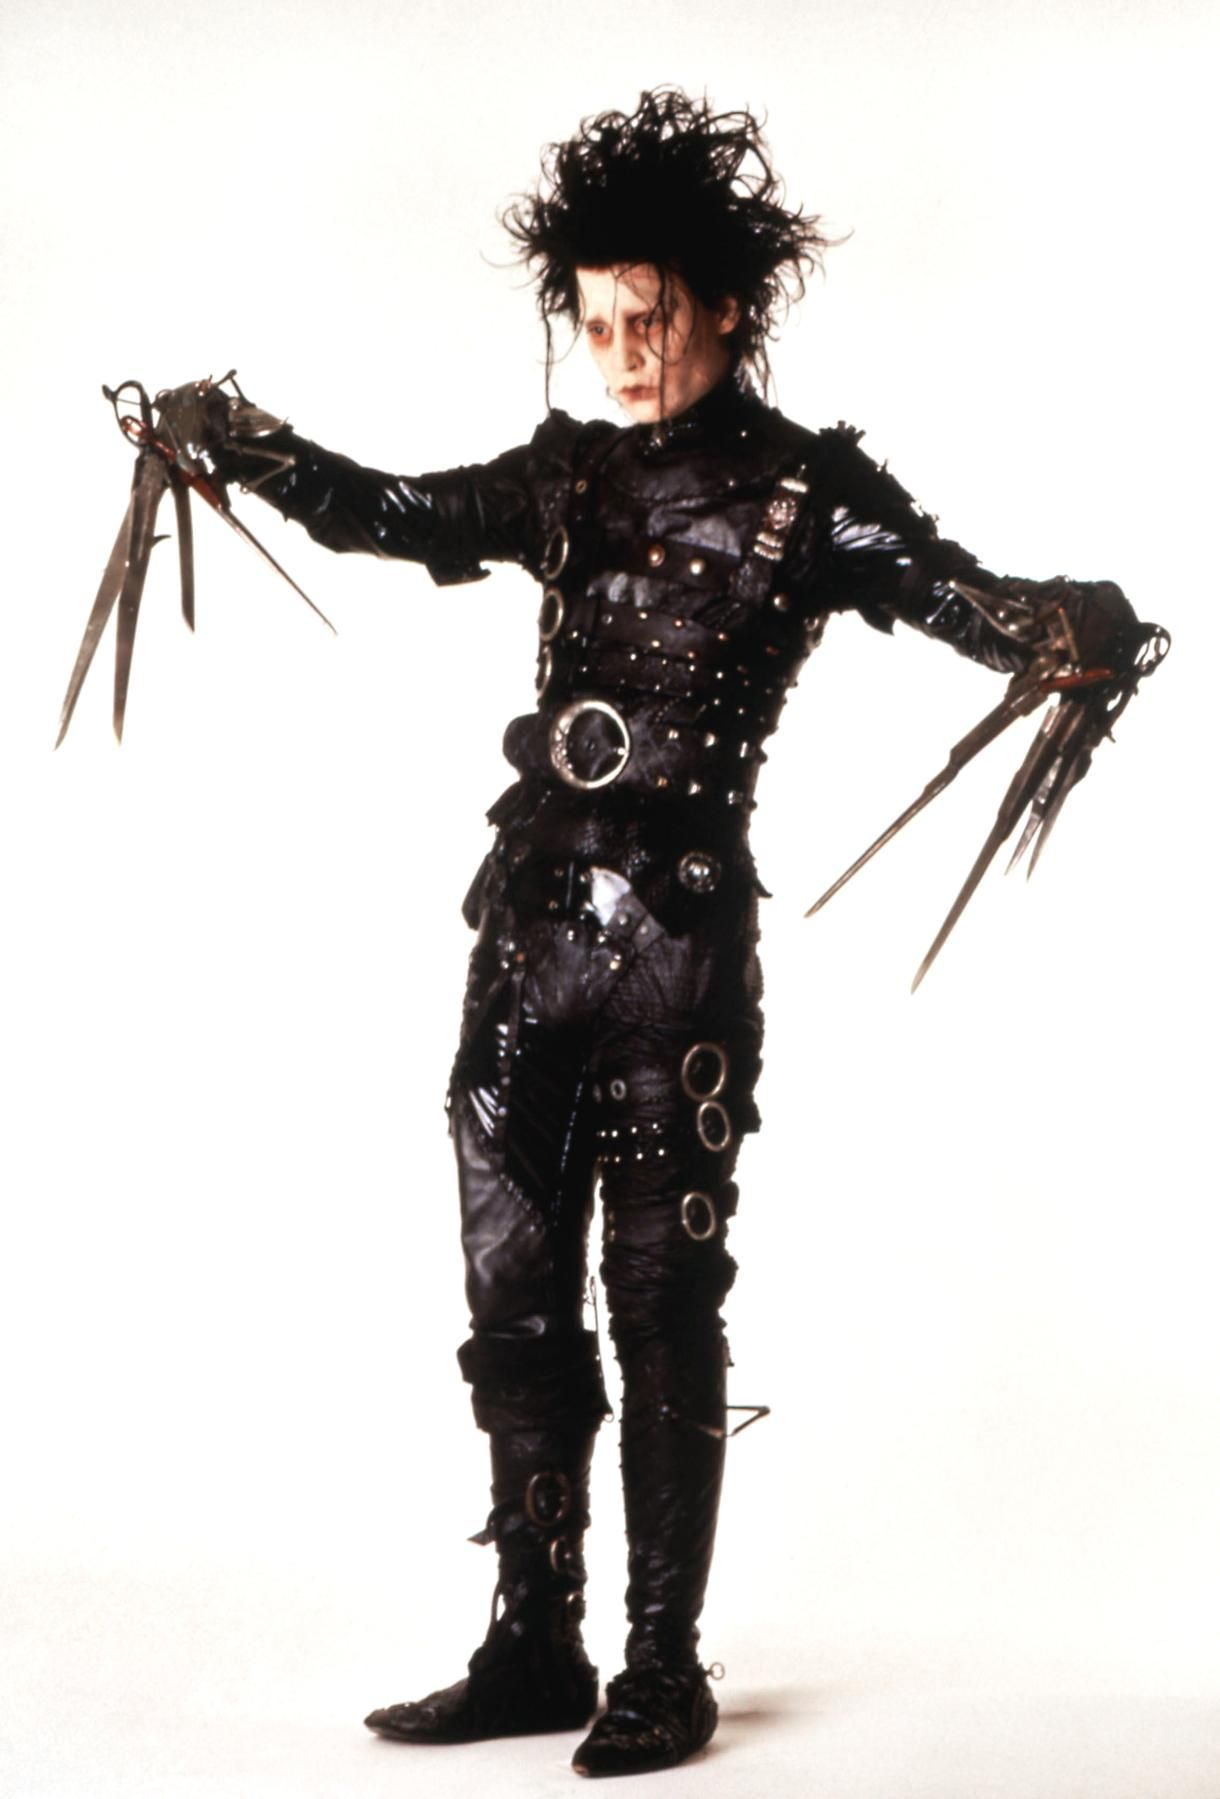 The Johnny Depp Look Book With Images Edward Scissorhands Edward Scissorhands Costume Johnny Depp Characters